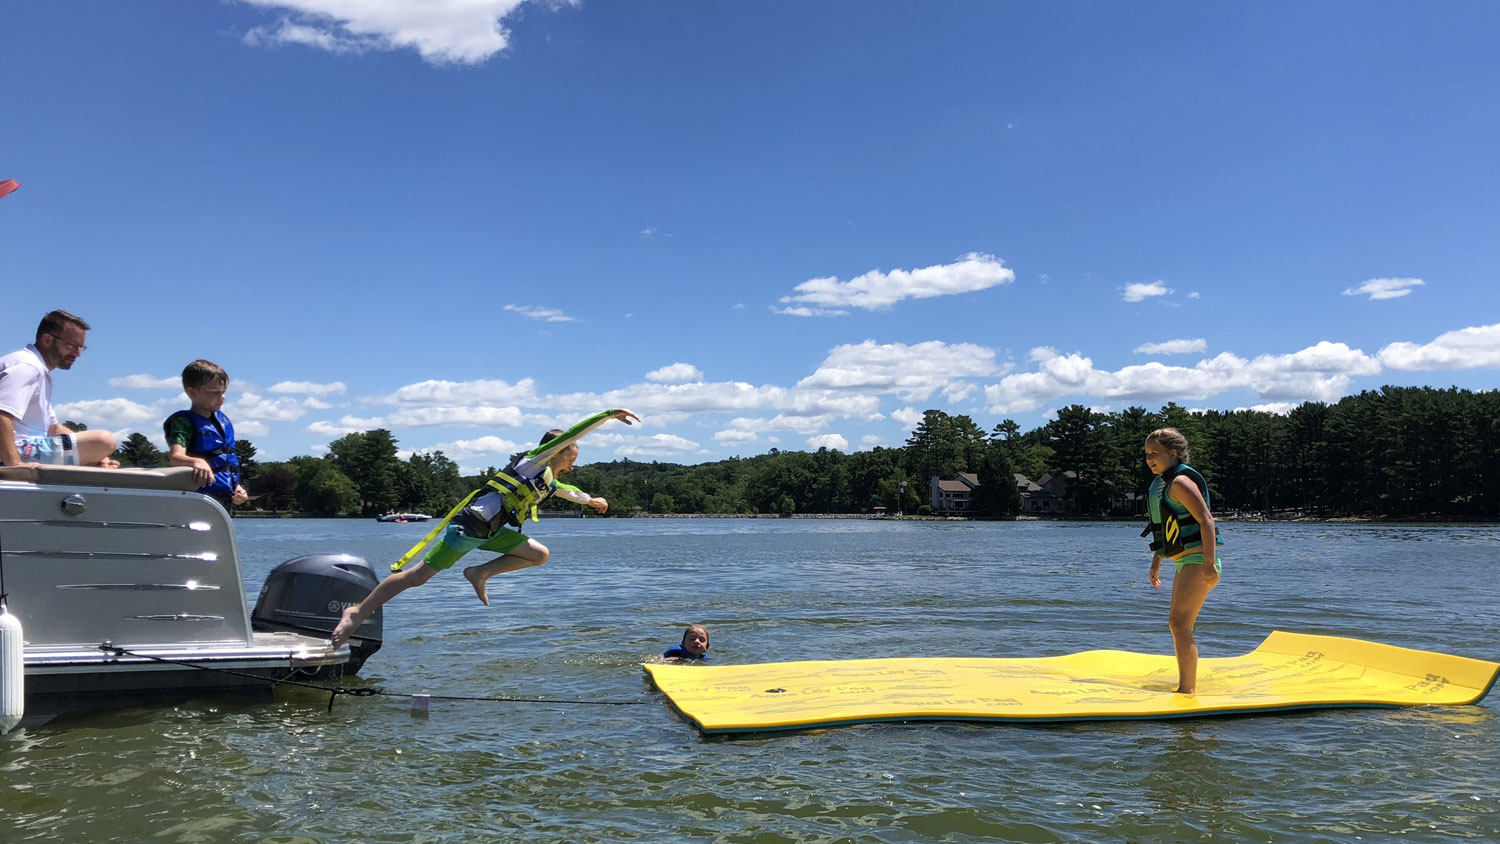 Pontoon Boat Rentals in Wisconsin Dells - Dells Watersports